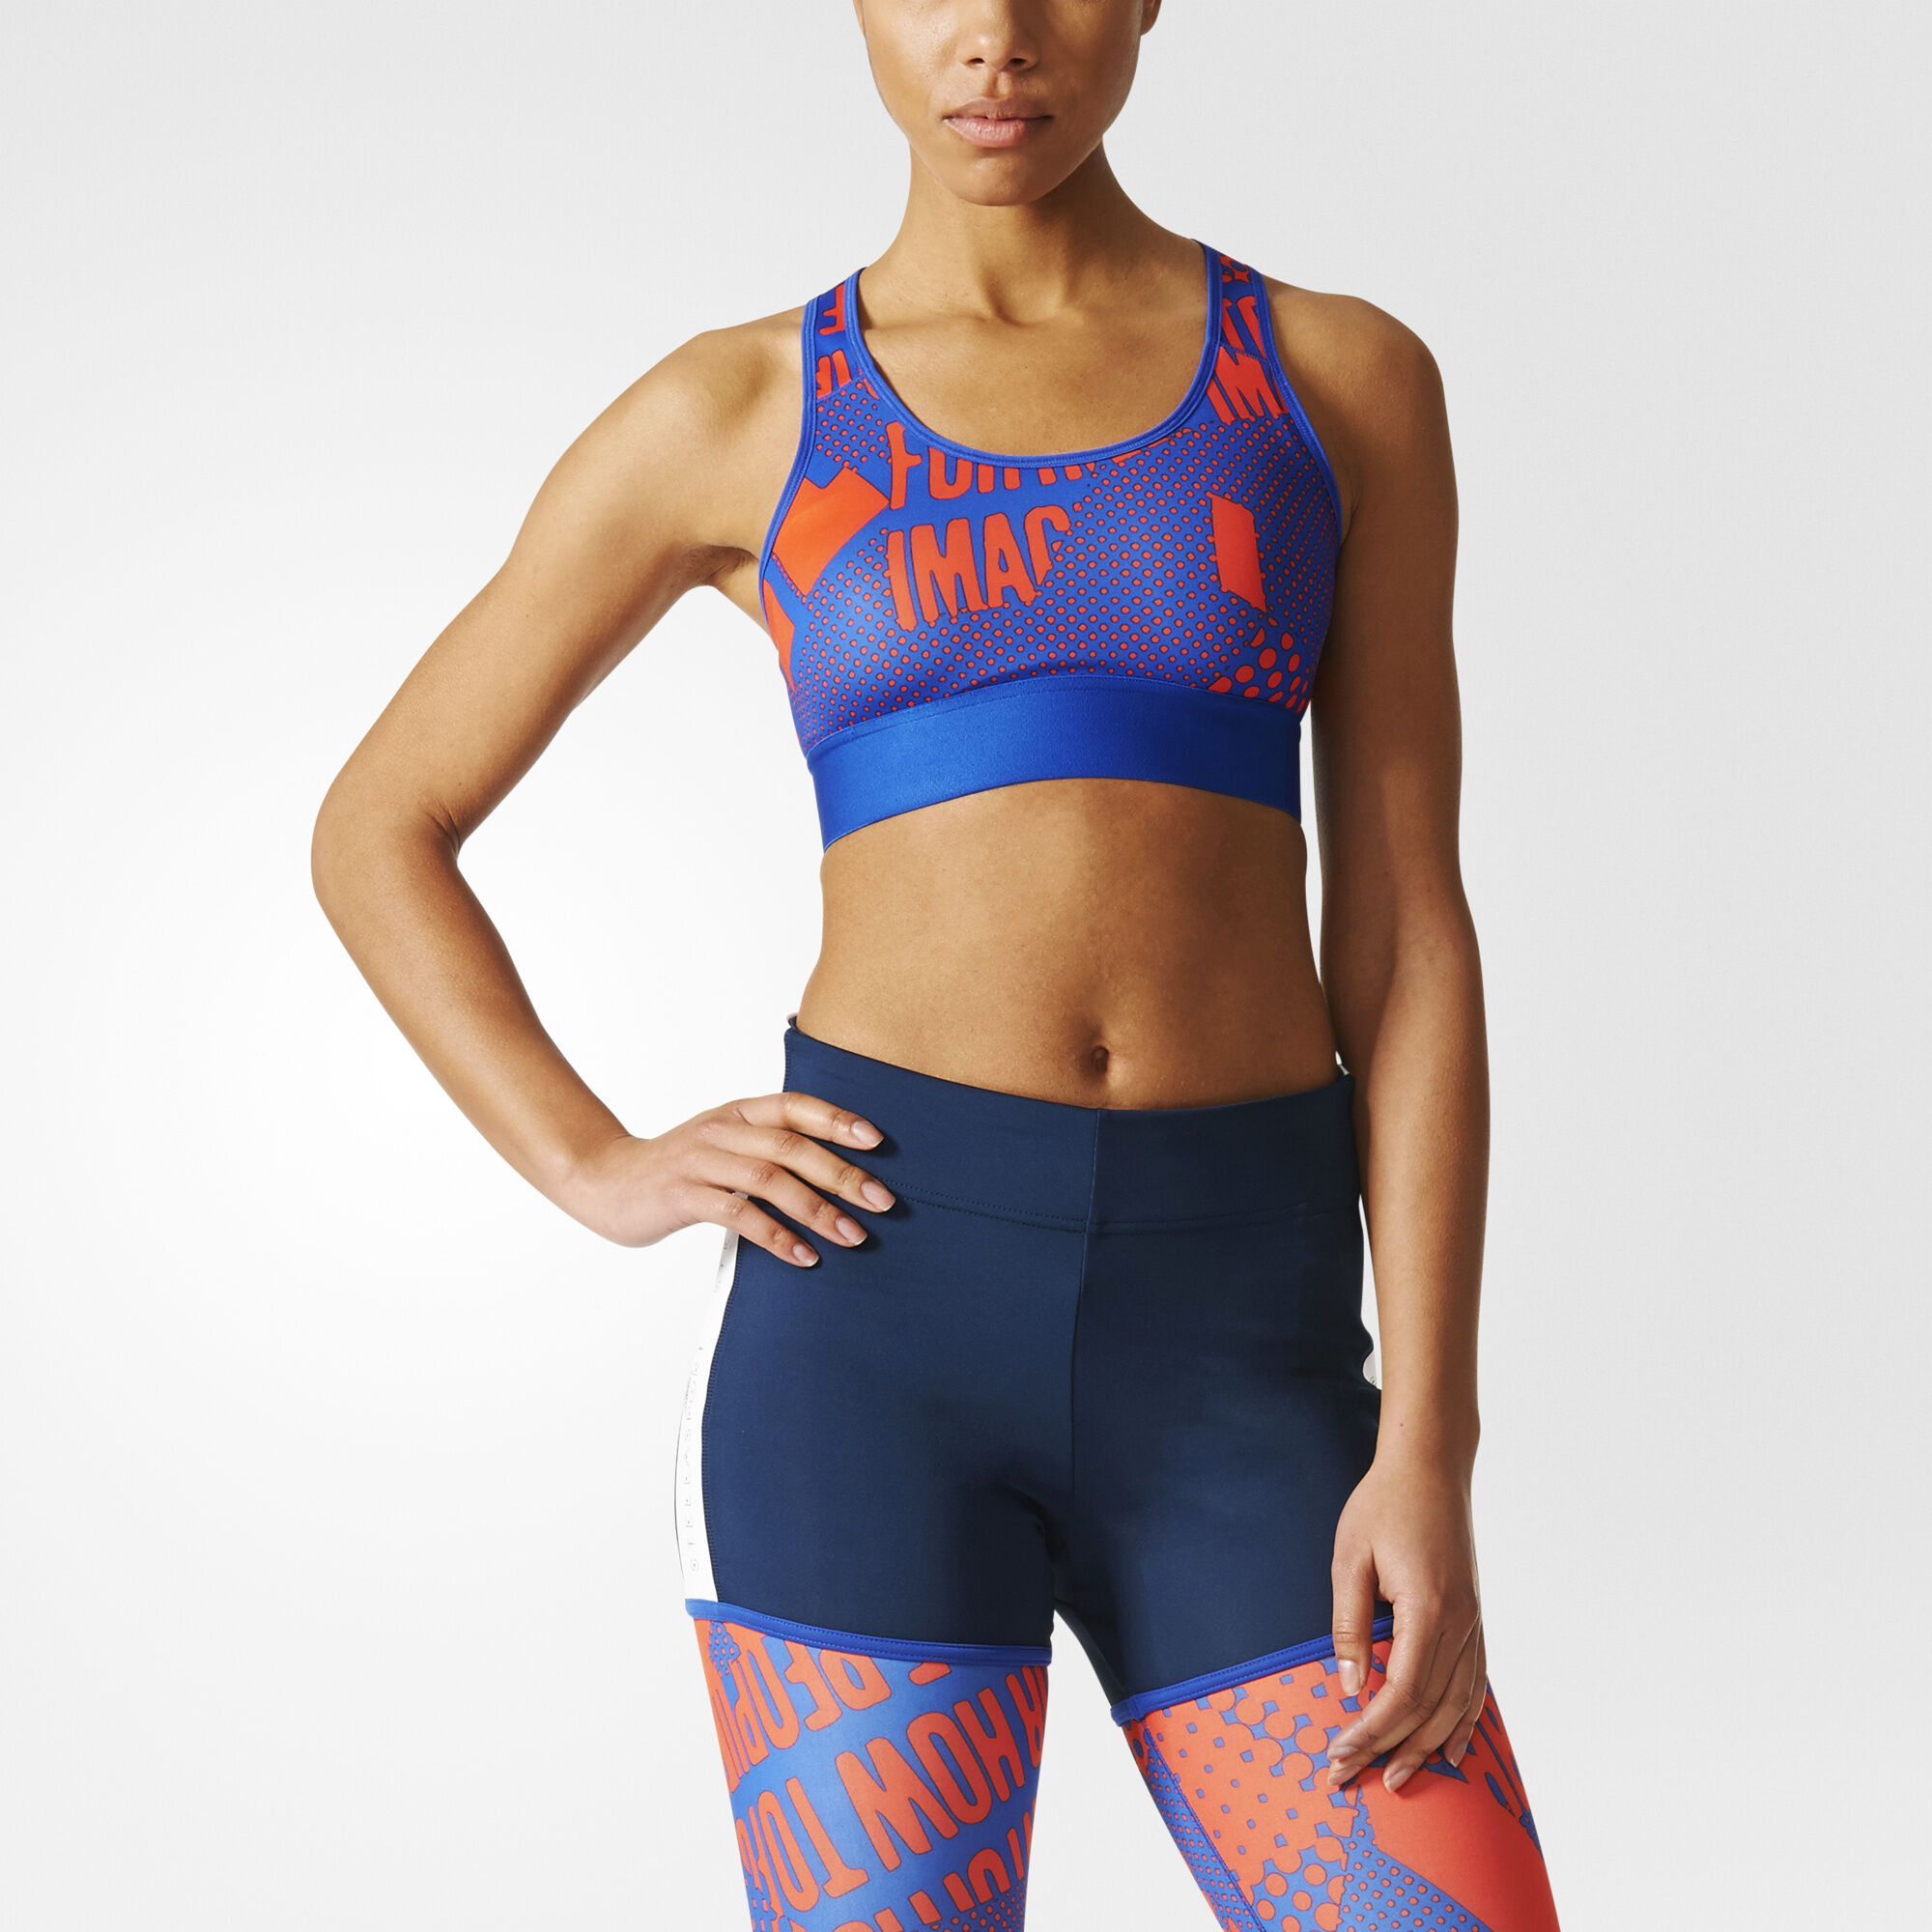 Discount Latest Stella Sport Medium Support Bra - Bold blue/solar red adidas 100% Authentic Sale Online Comfortable Cheap Price 6vHw0A